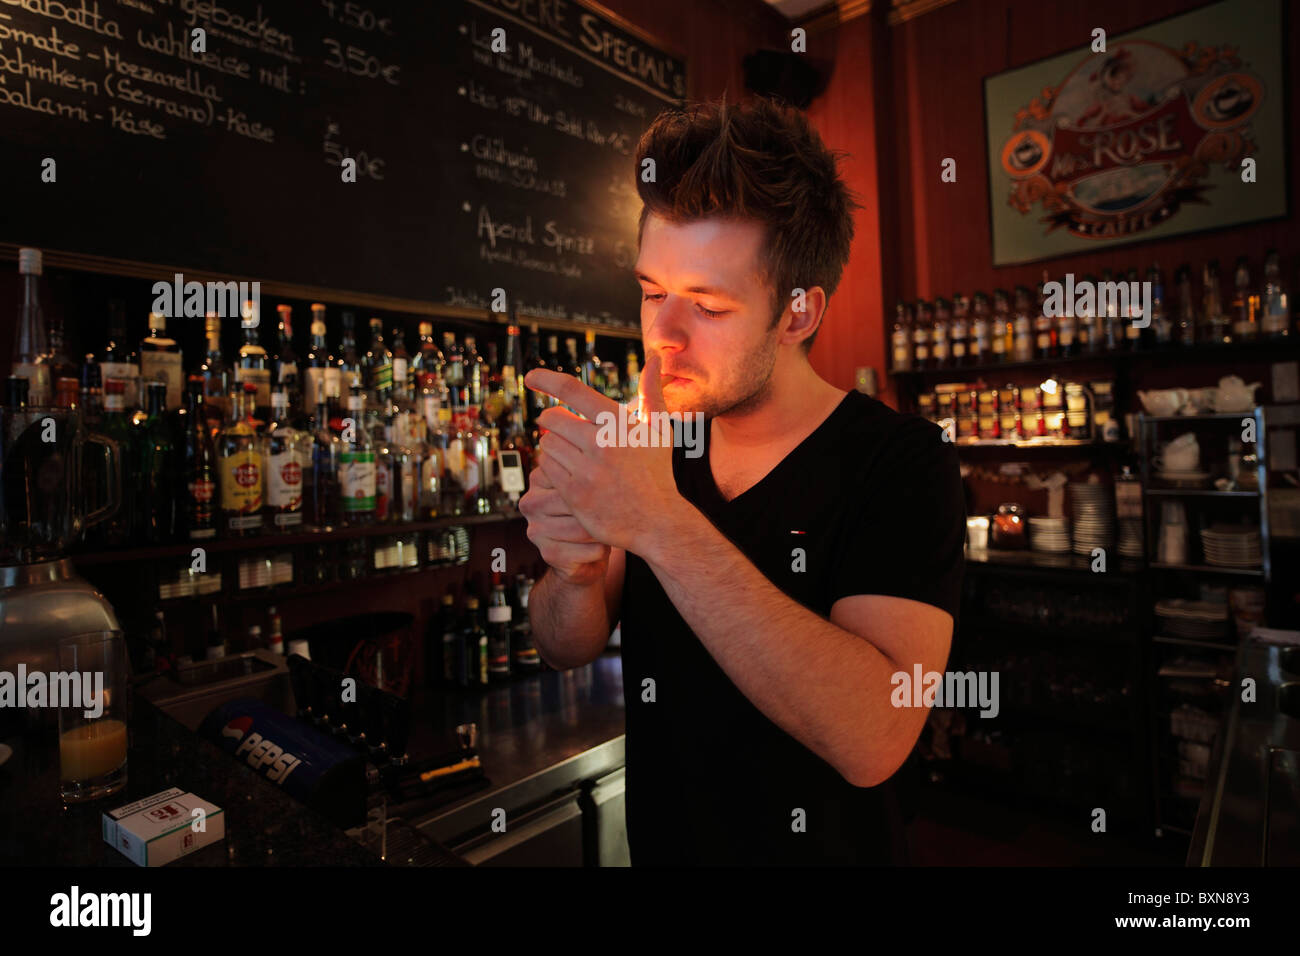 young barman lighting a cigarette behind the counter in a bar - Stock Image